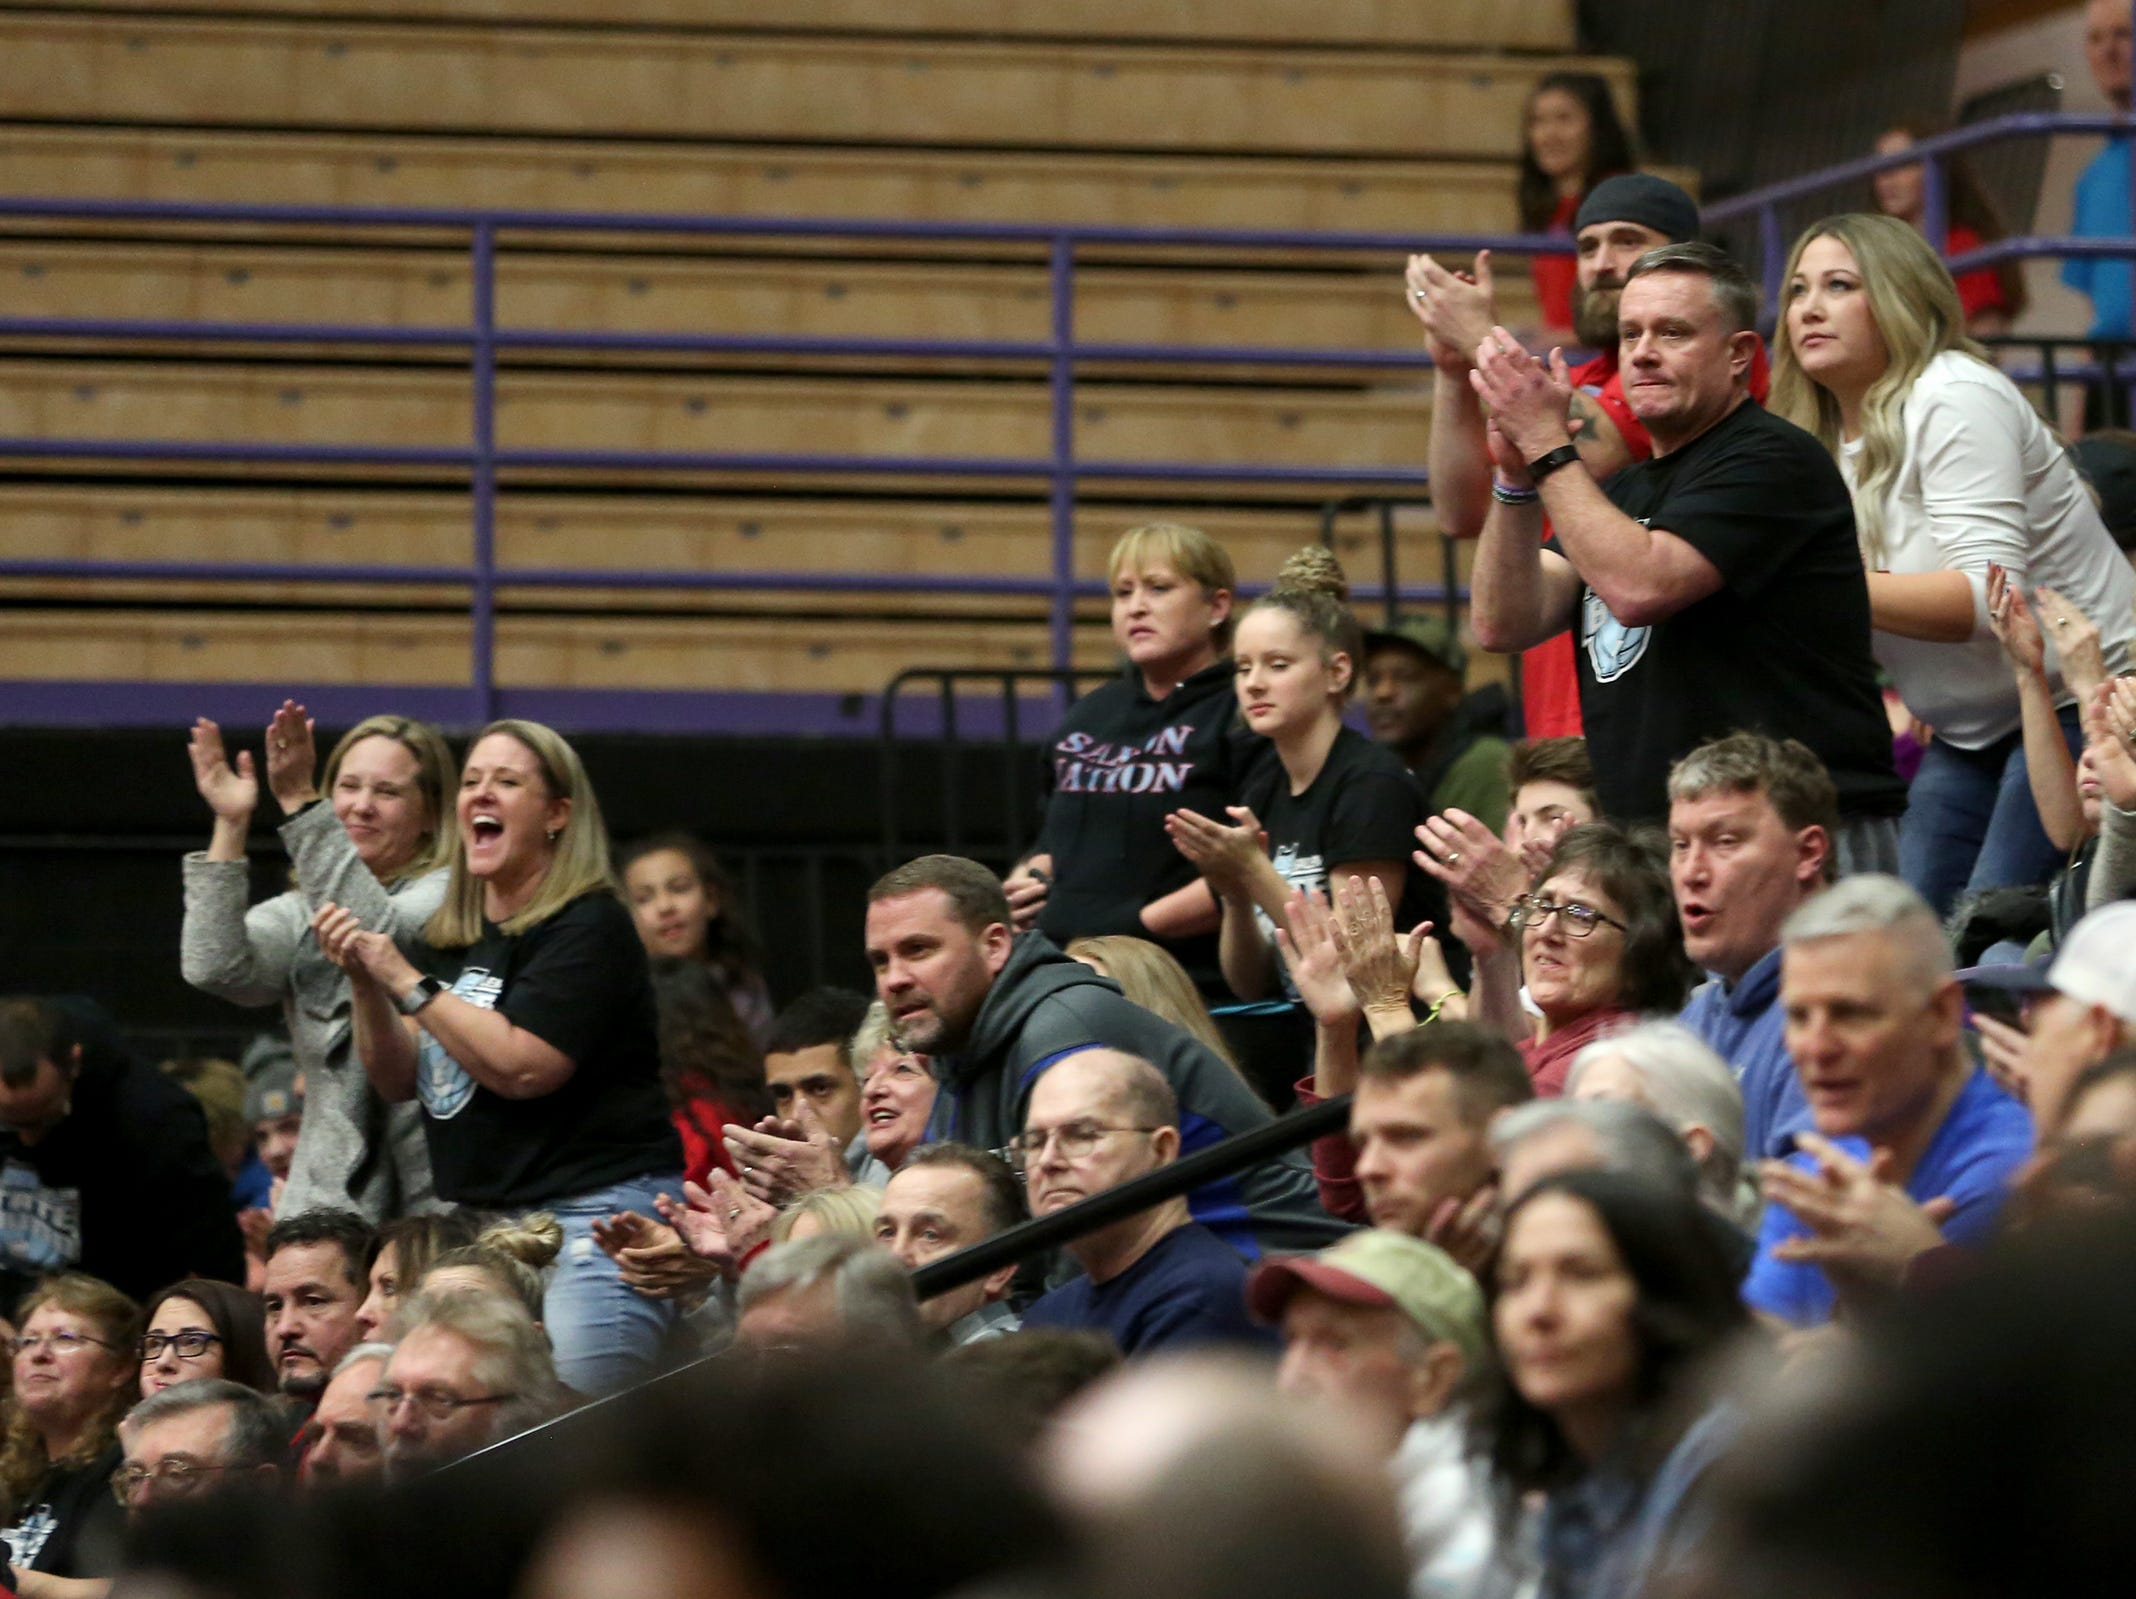 South Salem fans cheer on their team during the South Salem vs. Jefferson boys basketball OSAA 6A semifinal game at Chiles Center in Portland on Friday, March 8, 2019.